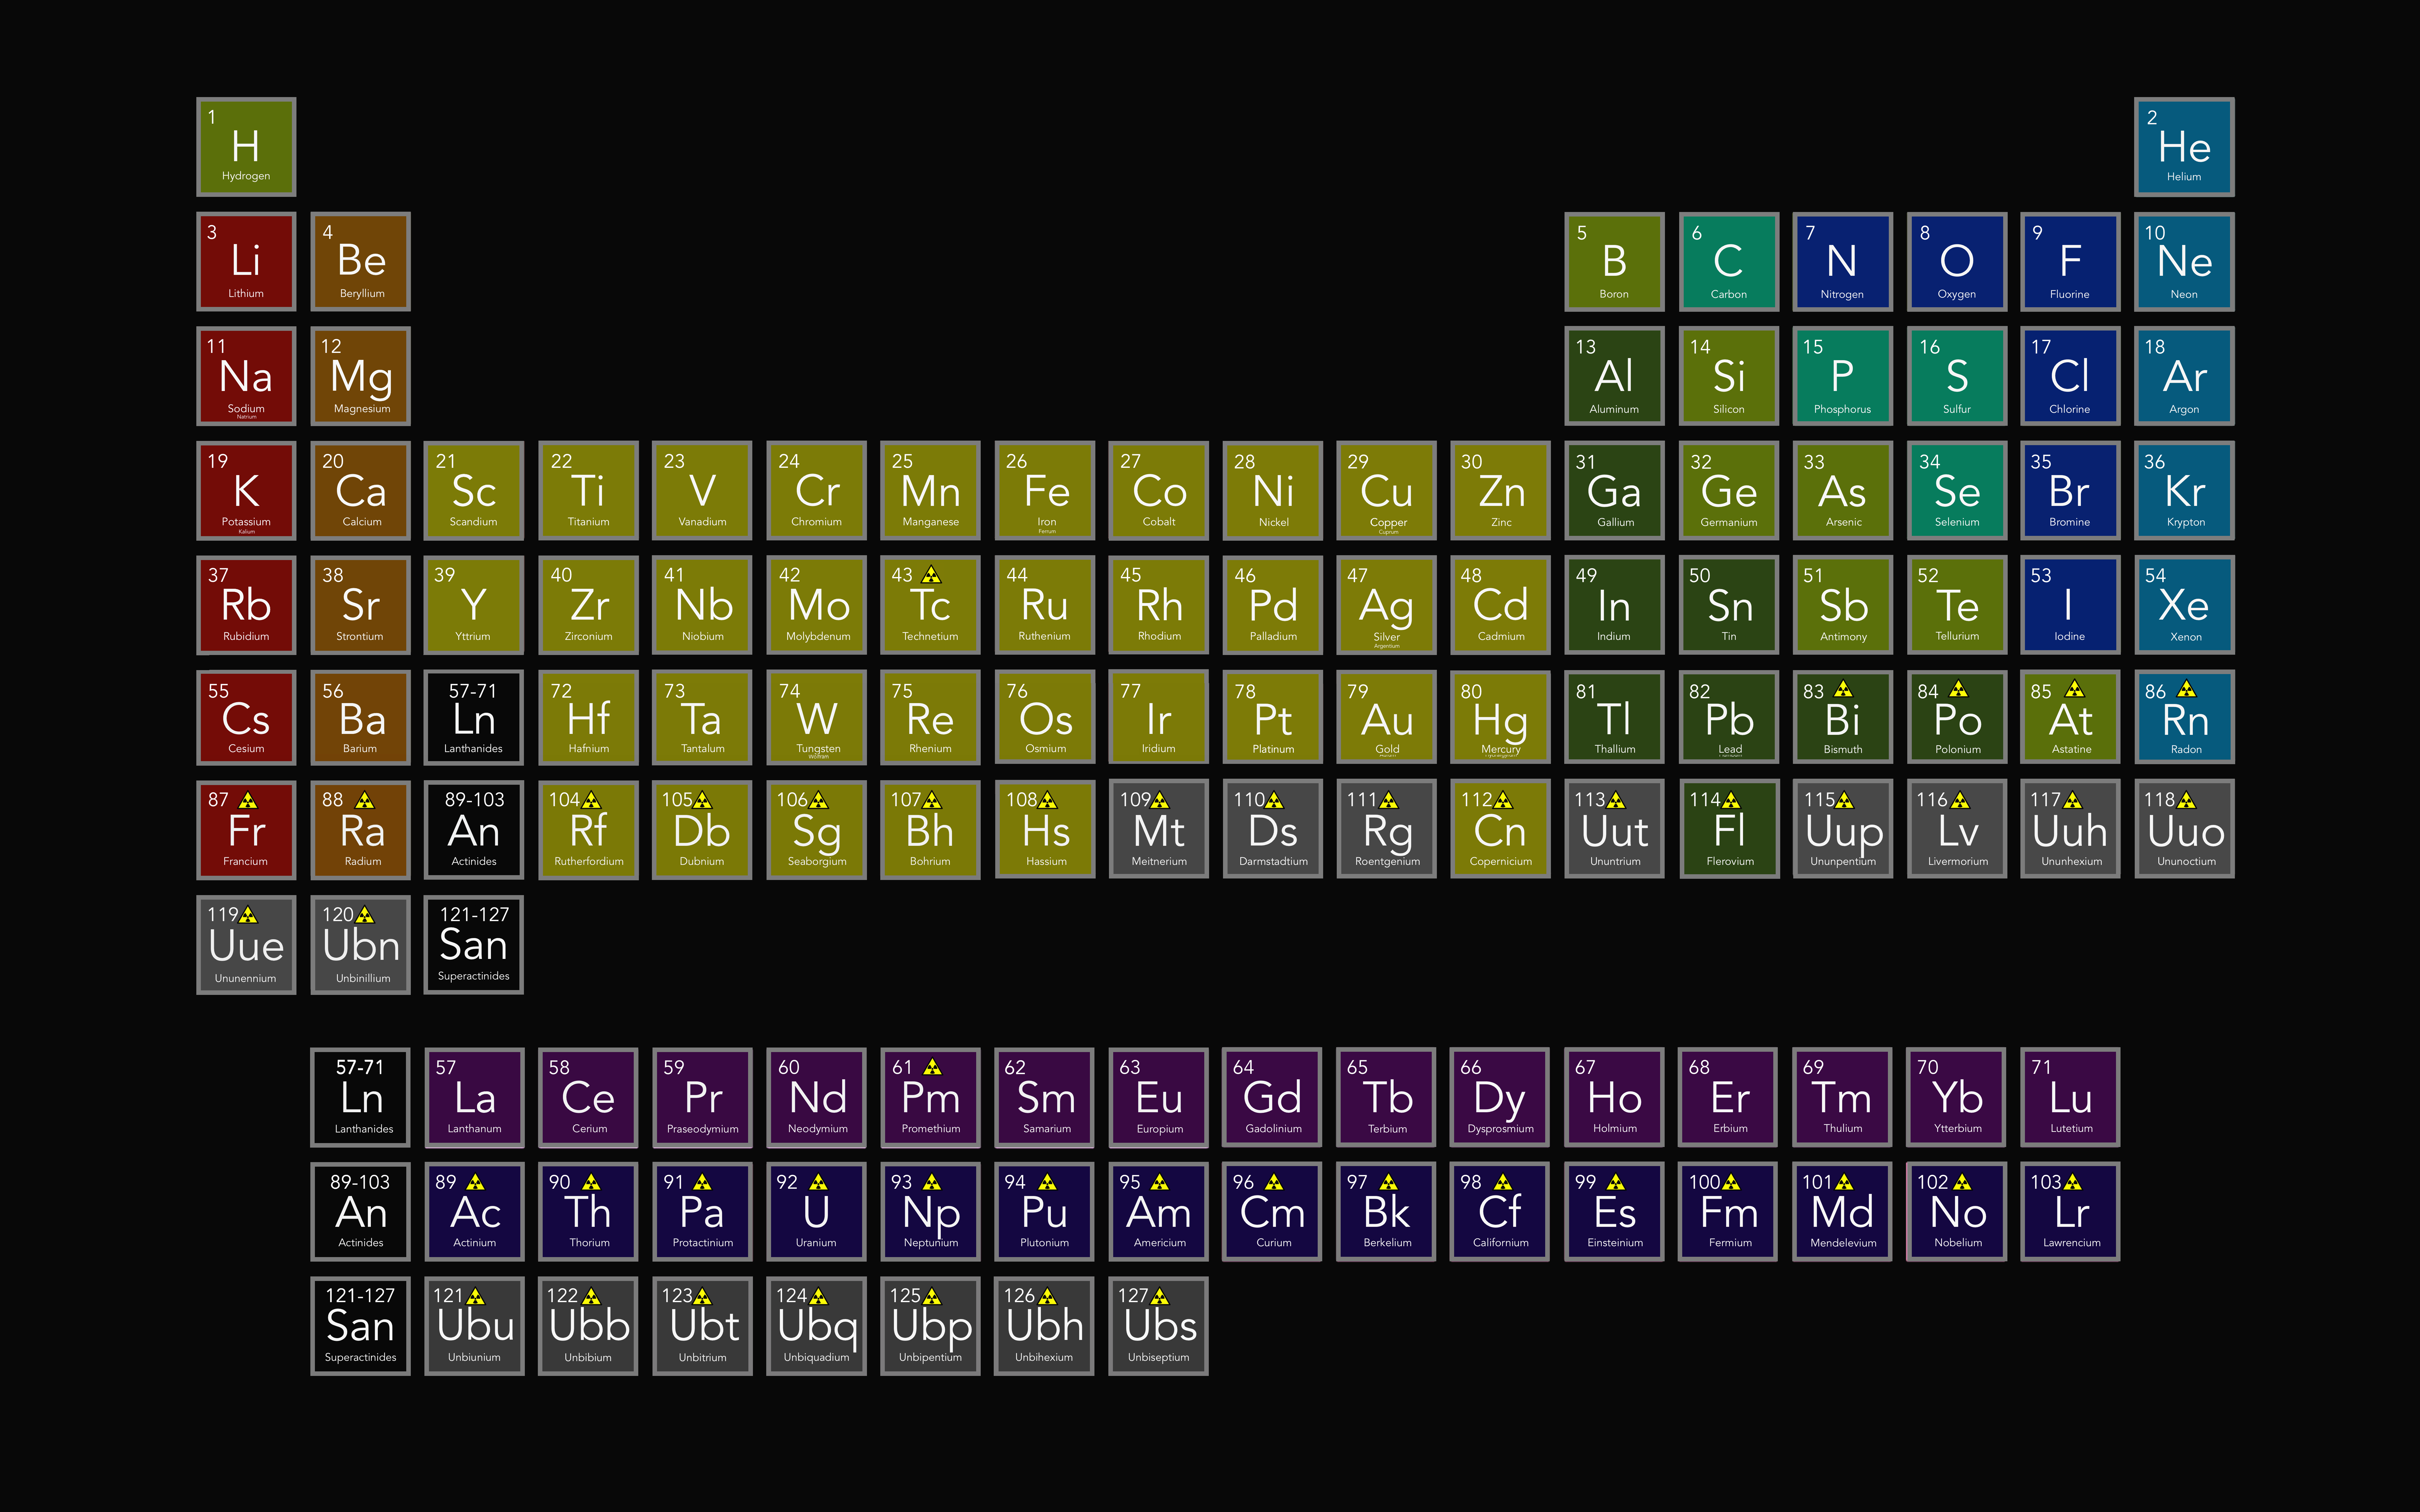 The periodic table of elements by omegshi147 on deviantart the periodic table of elements by omegshi147 gamestrikefo Choice Image